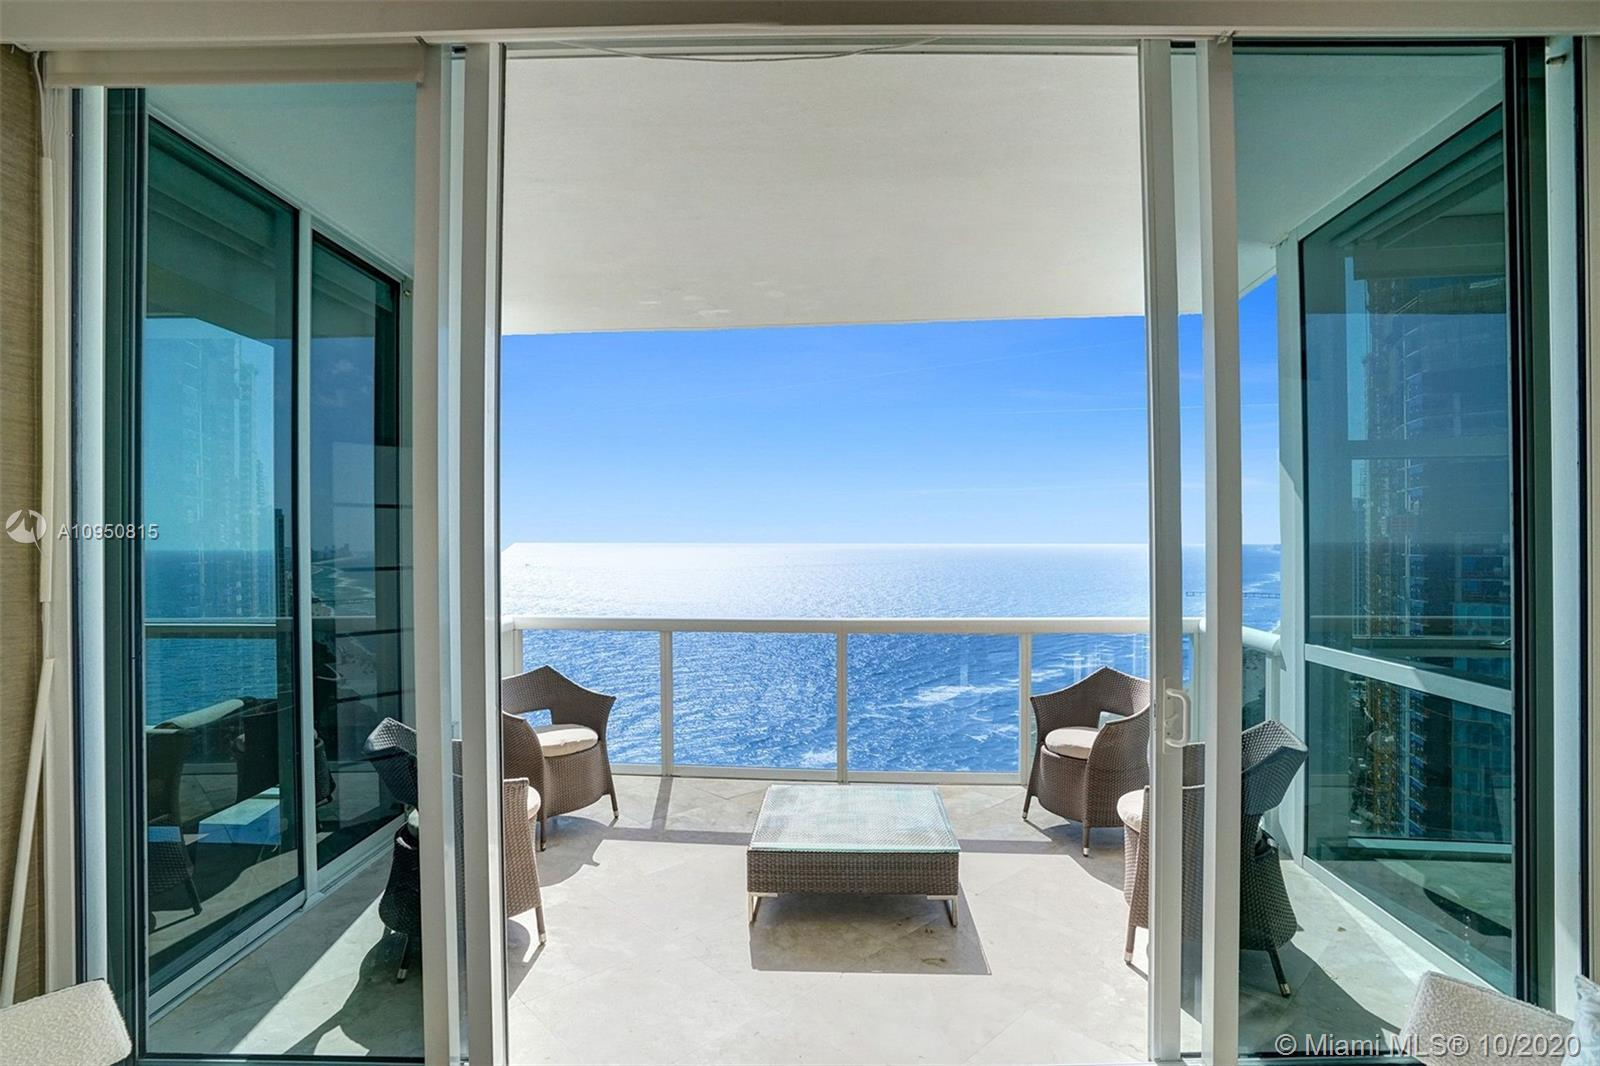 Stunning one of a kind residences available for sale at the Trump Palace building in Sunny Isles Bea